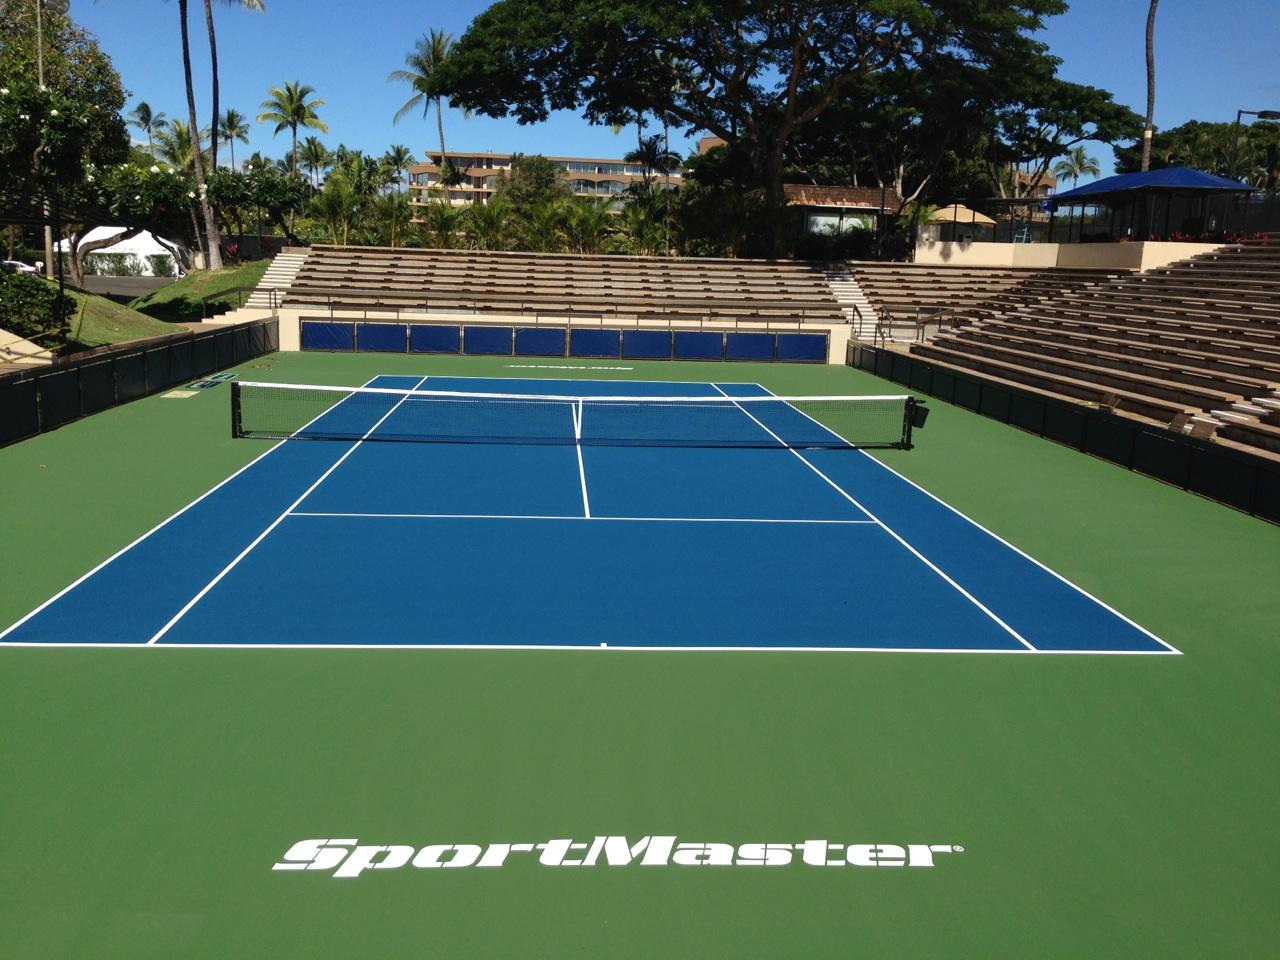 Tennis court resurfacing and repair in fort lauderdale and for How much does it cost to build a sport court